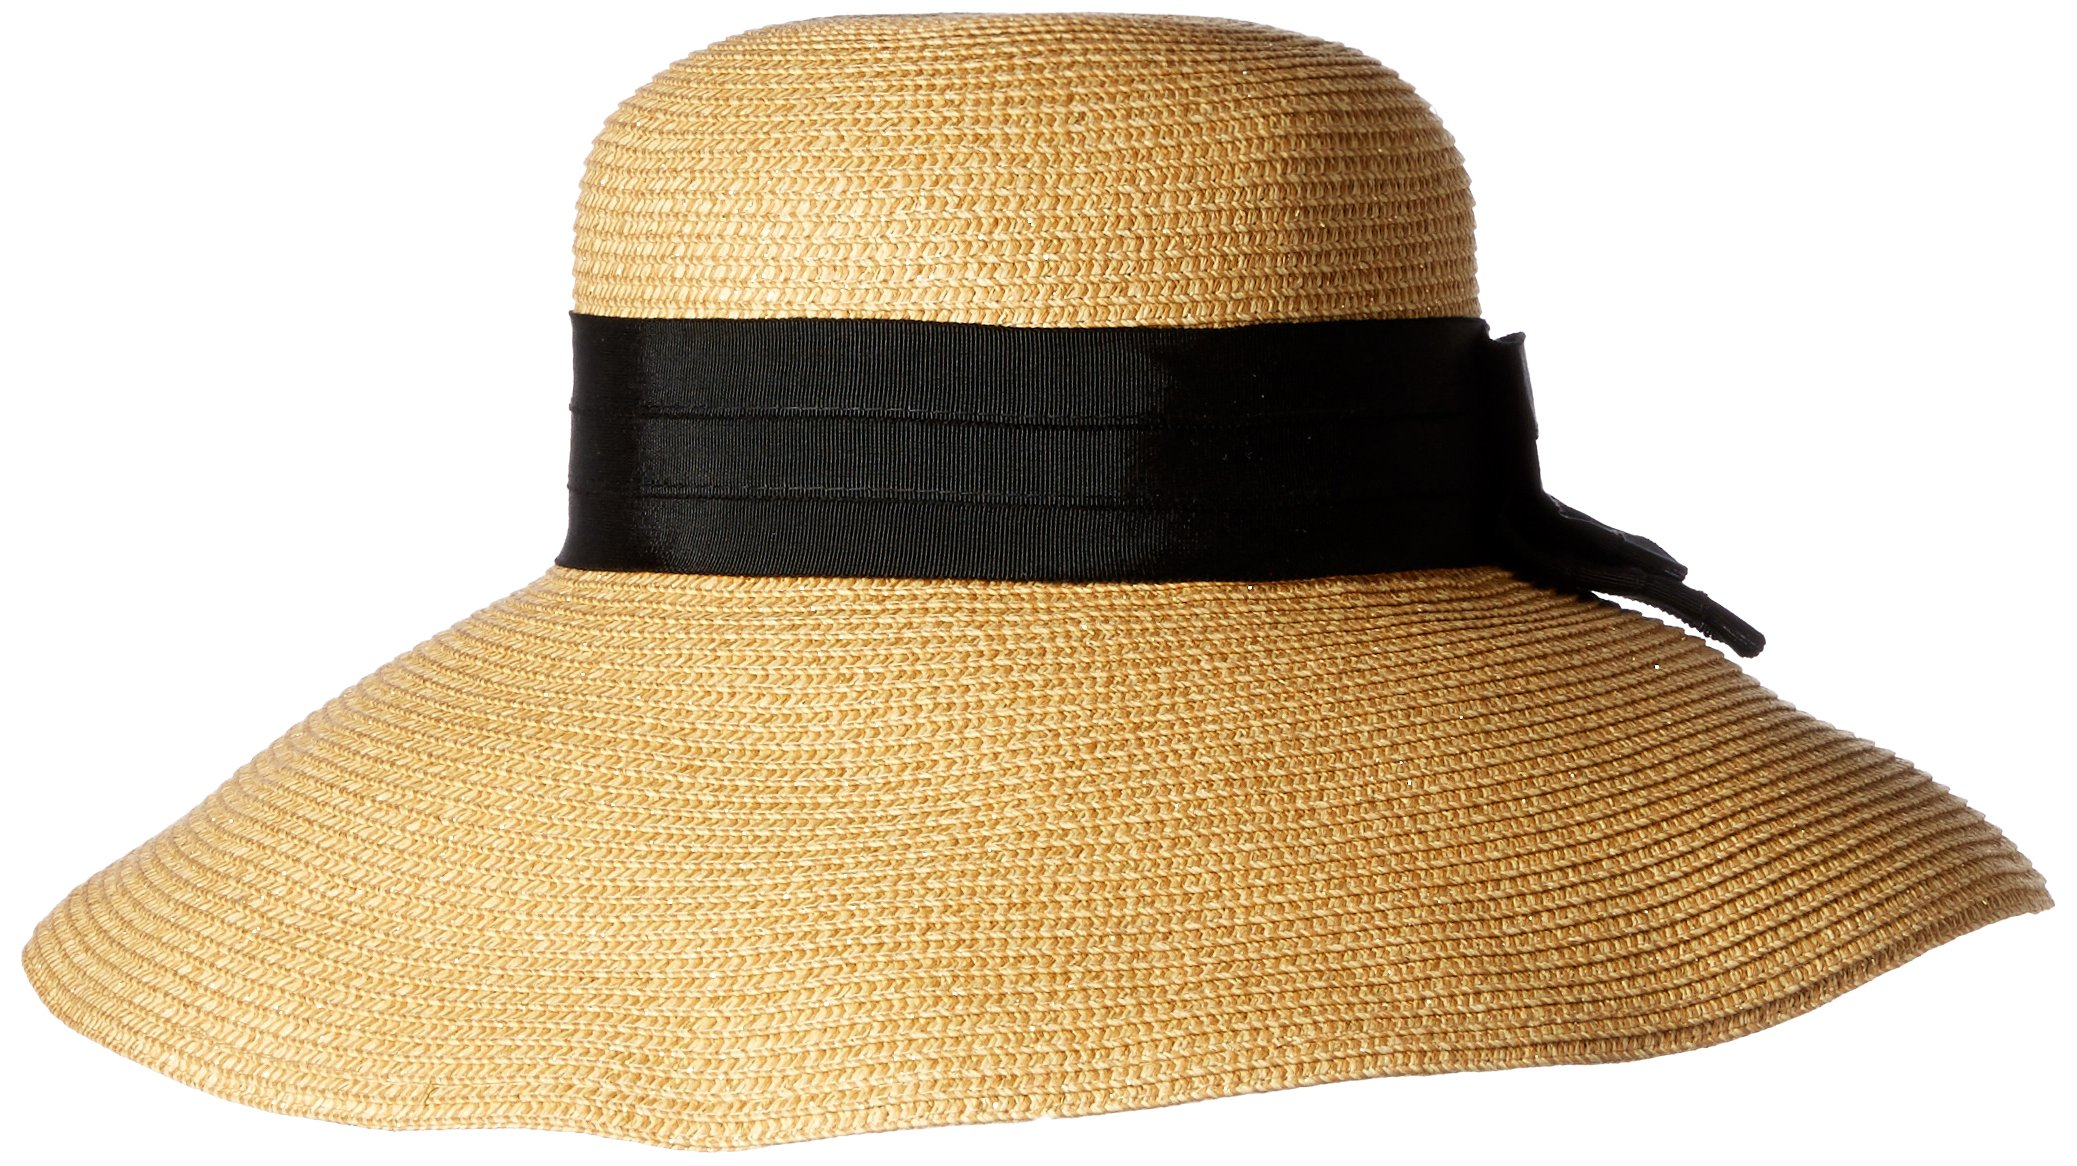 Gottex Women's Vesper Large Brim Sunhat Packable, Adjustable and Upf Rated, Gold, One Size by Gottex